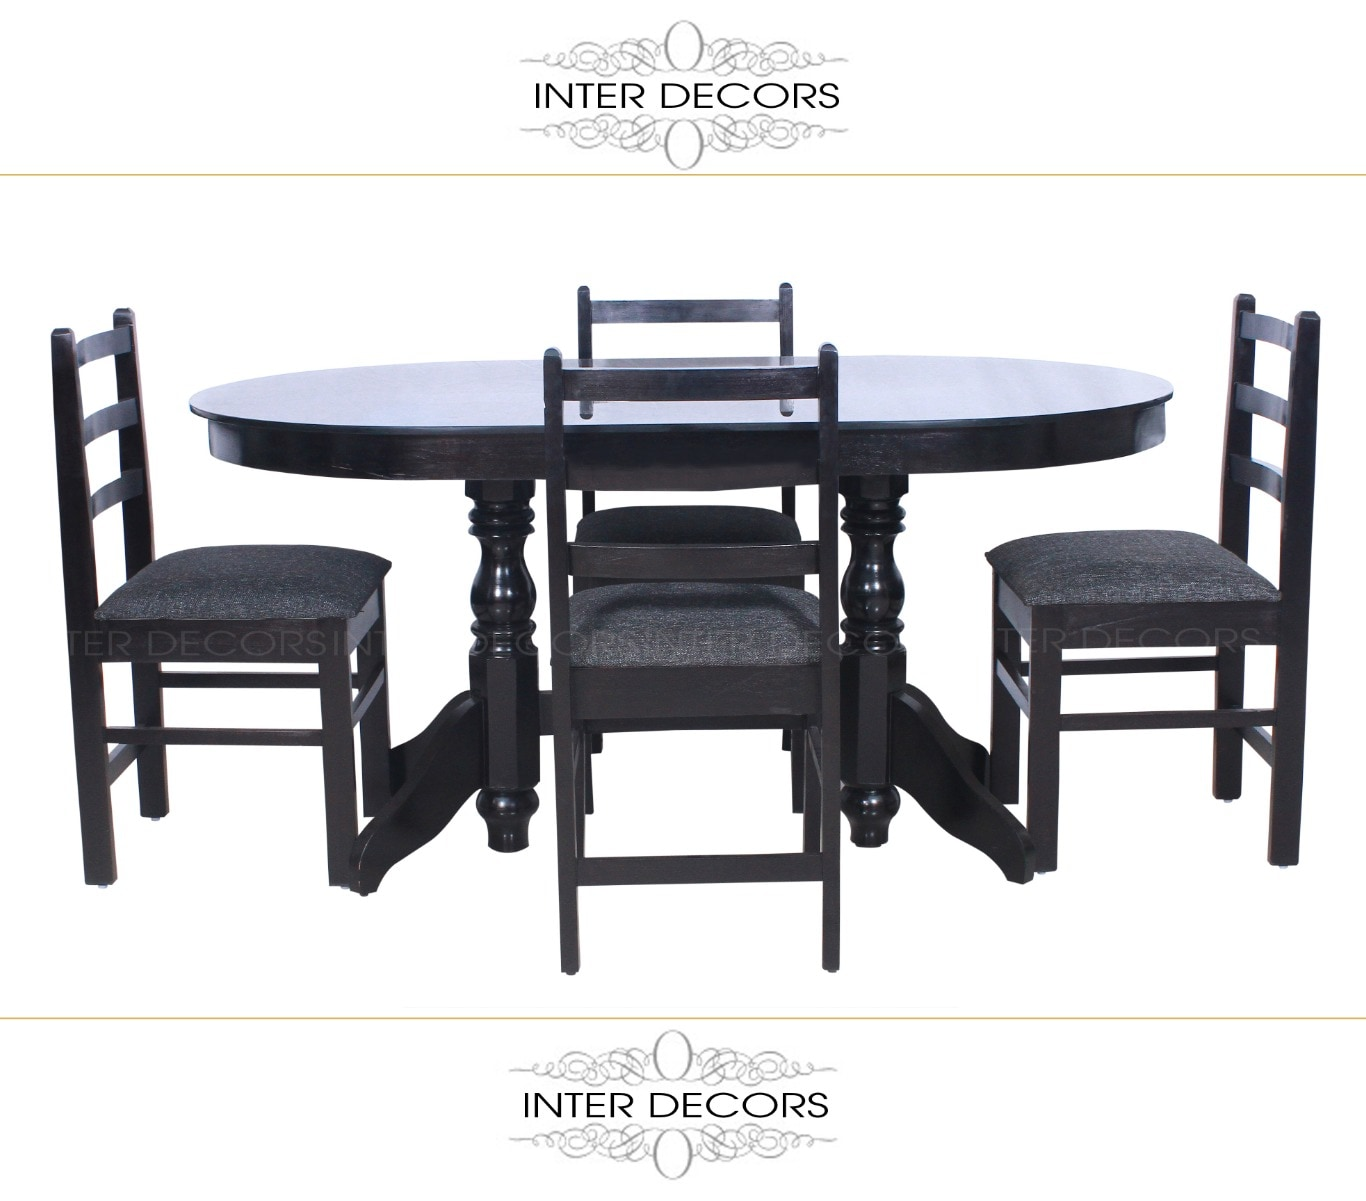 Wooden dining set with chairs and table